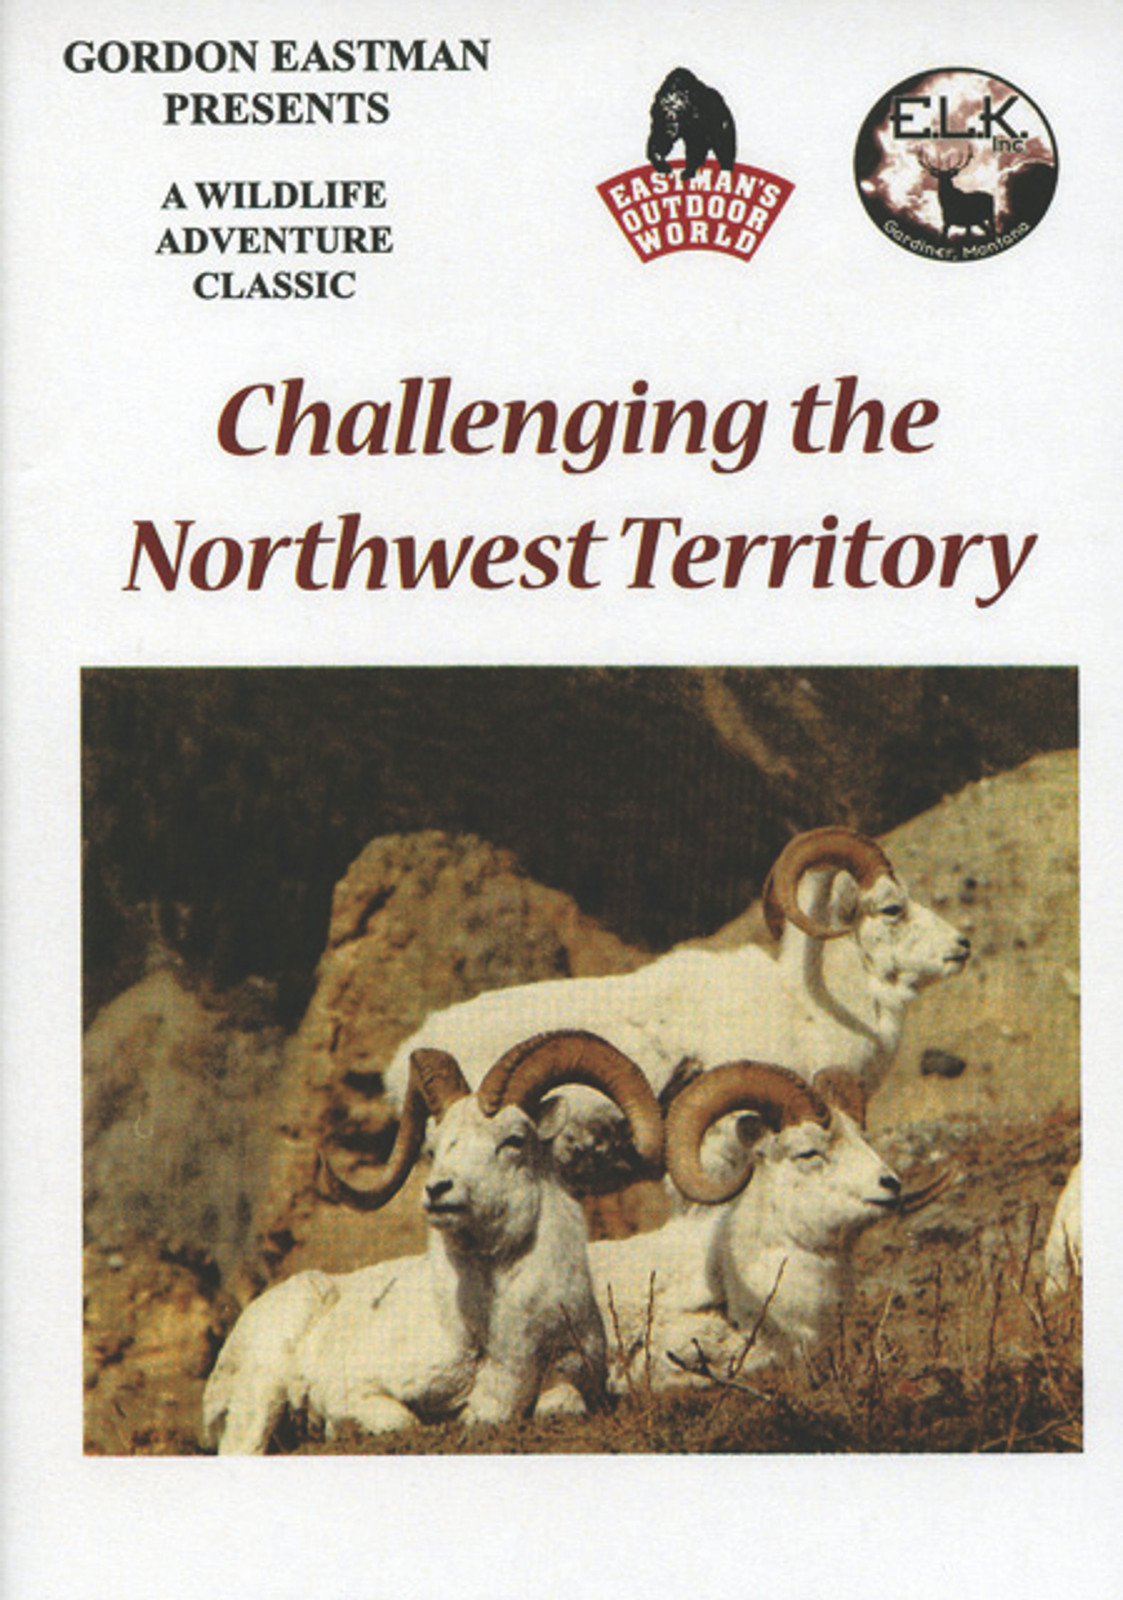 CHALLENGING THE NORTHWEST TERRITORY DVD